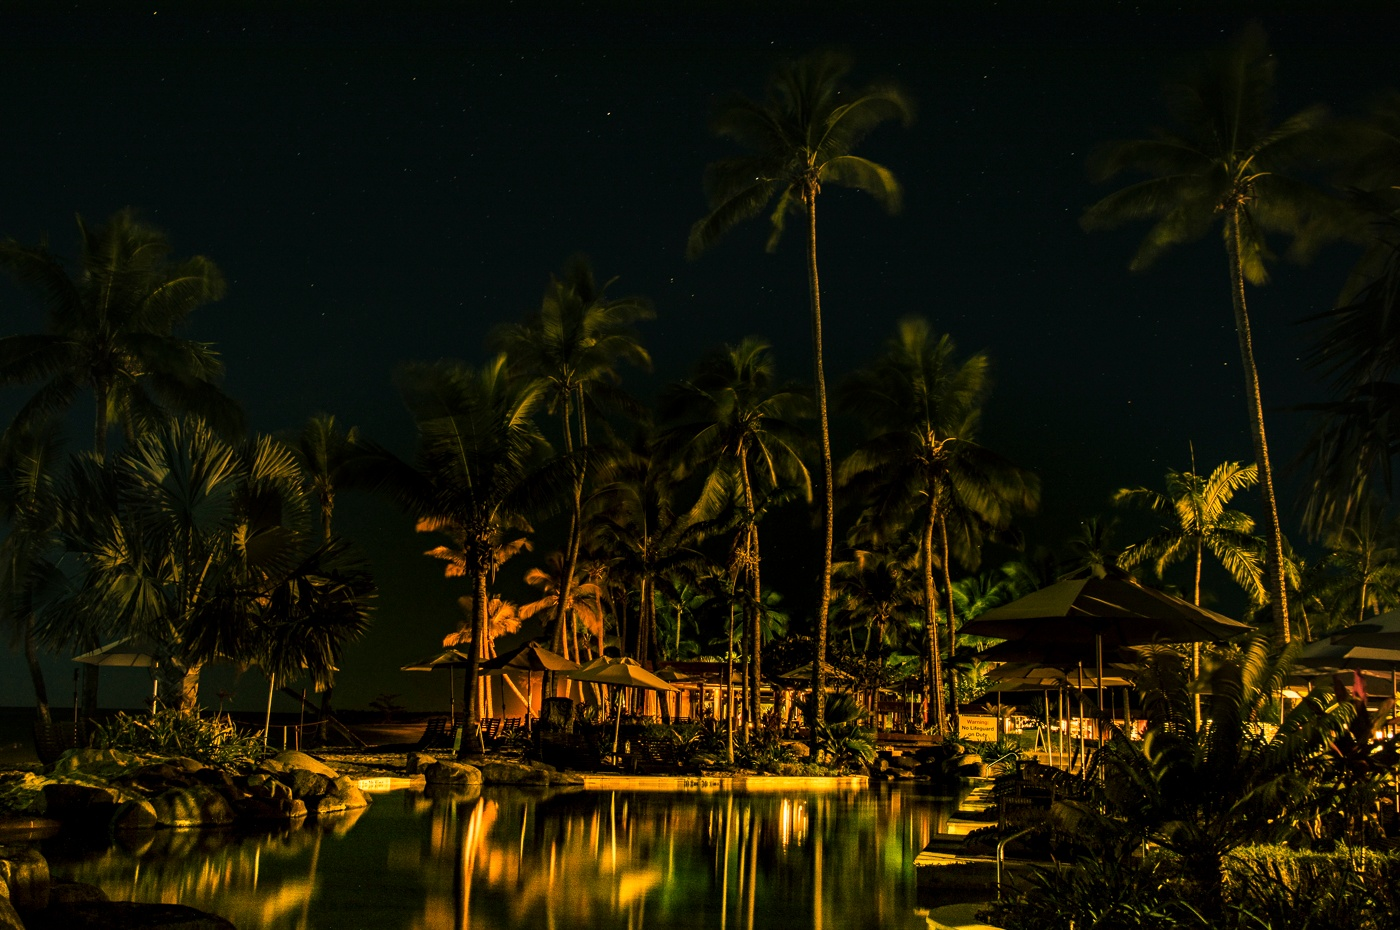 Midnight at the Oasis by Trevor McKinnon